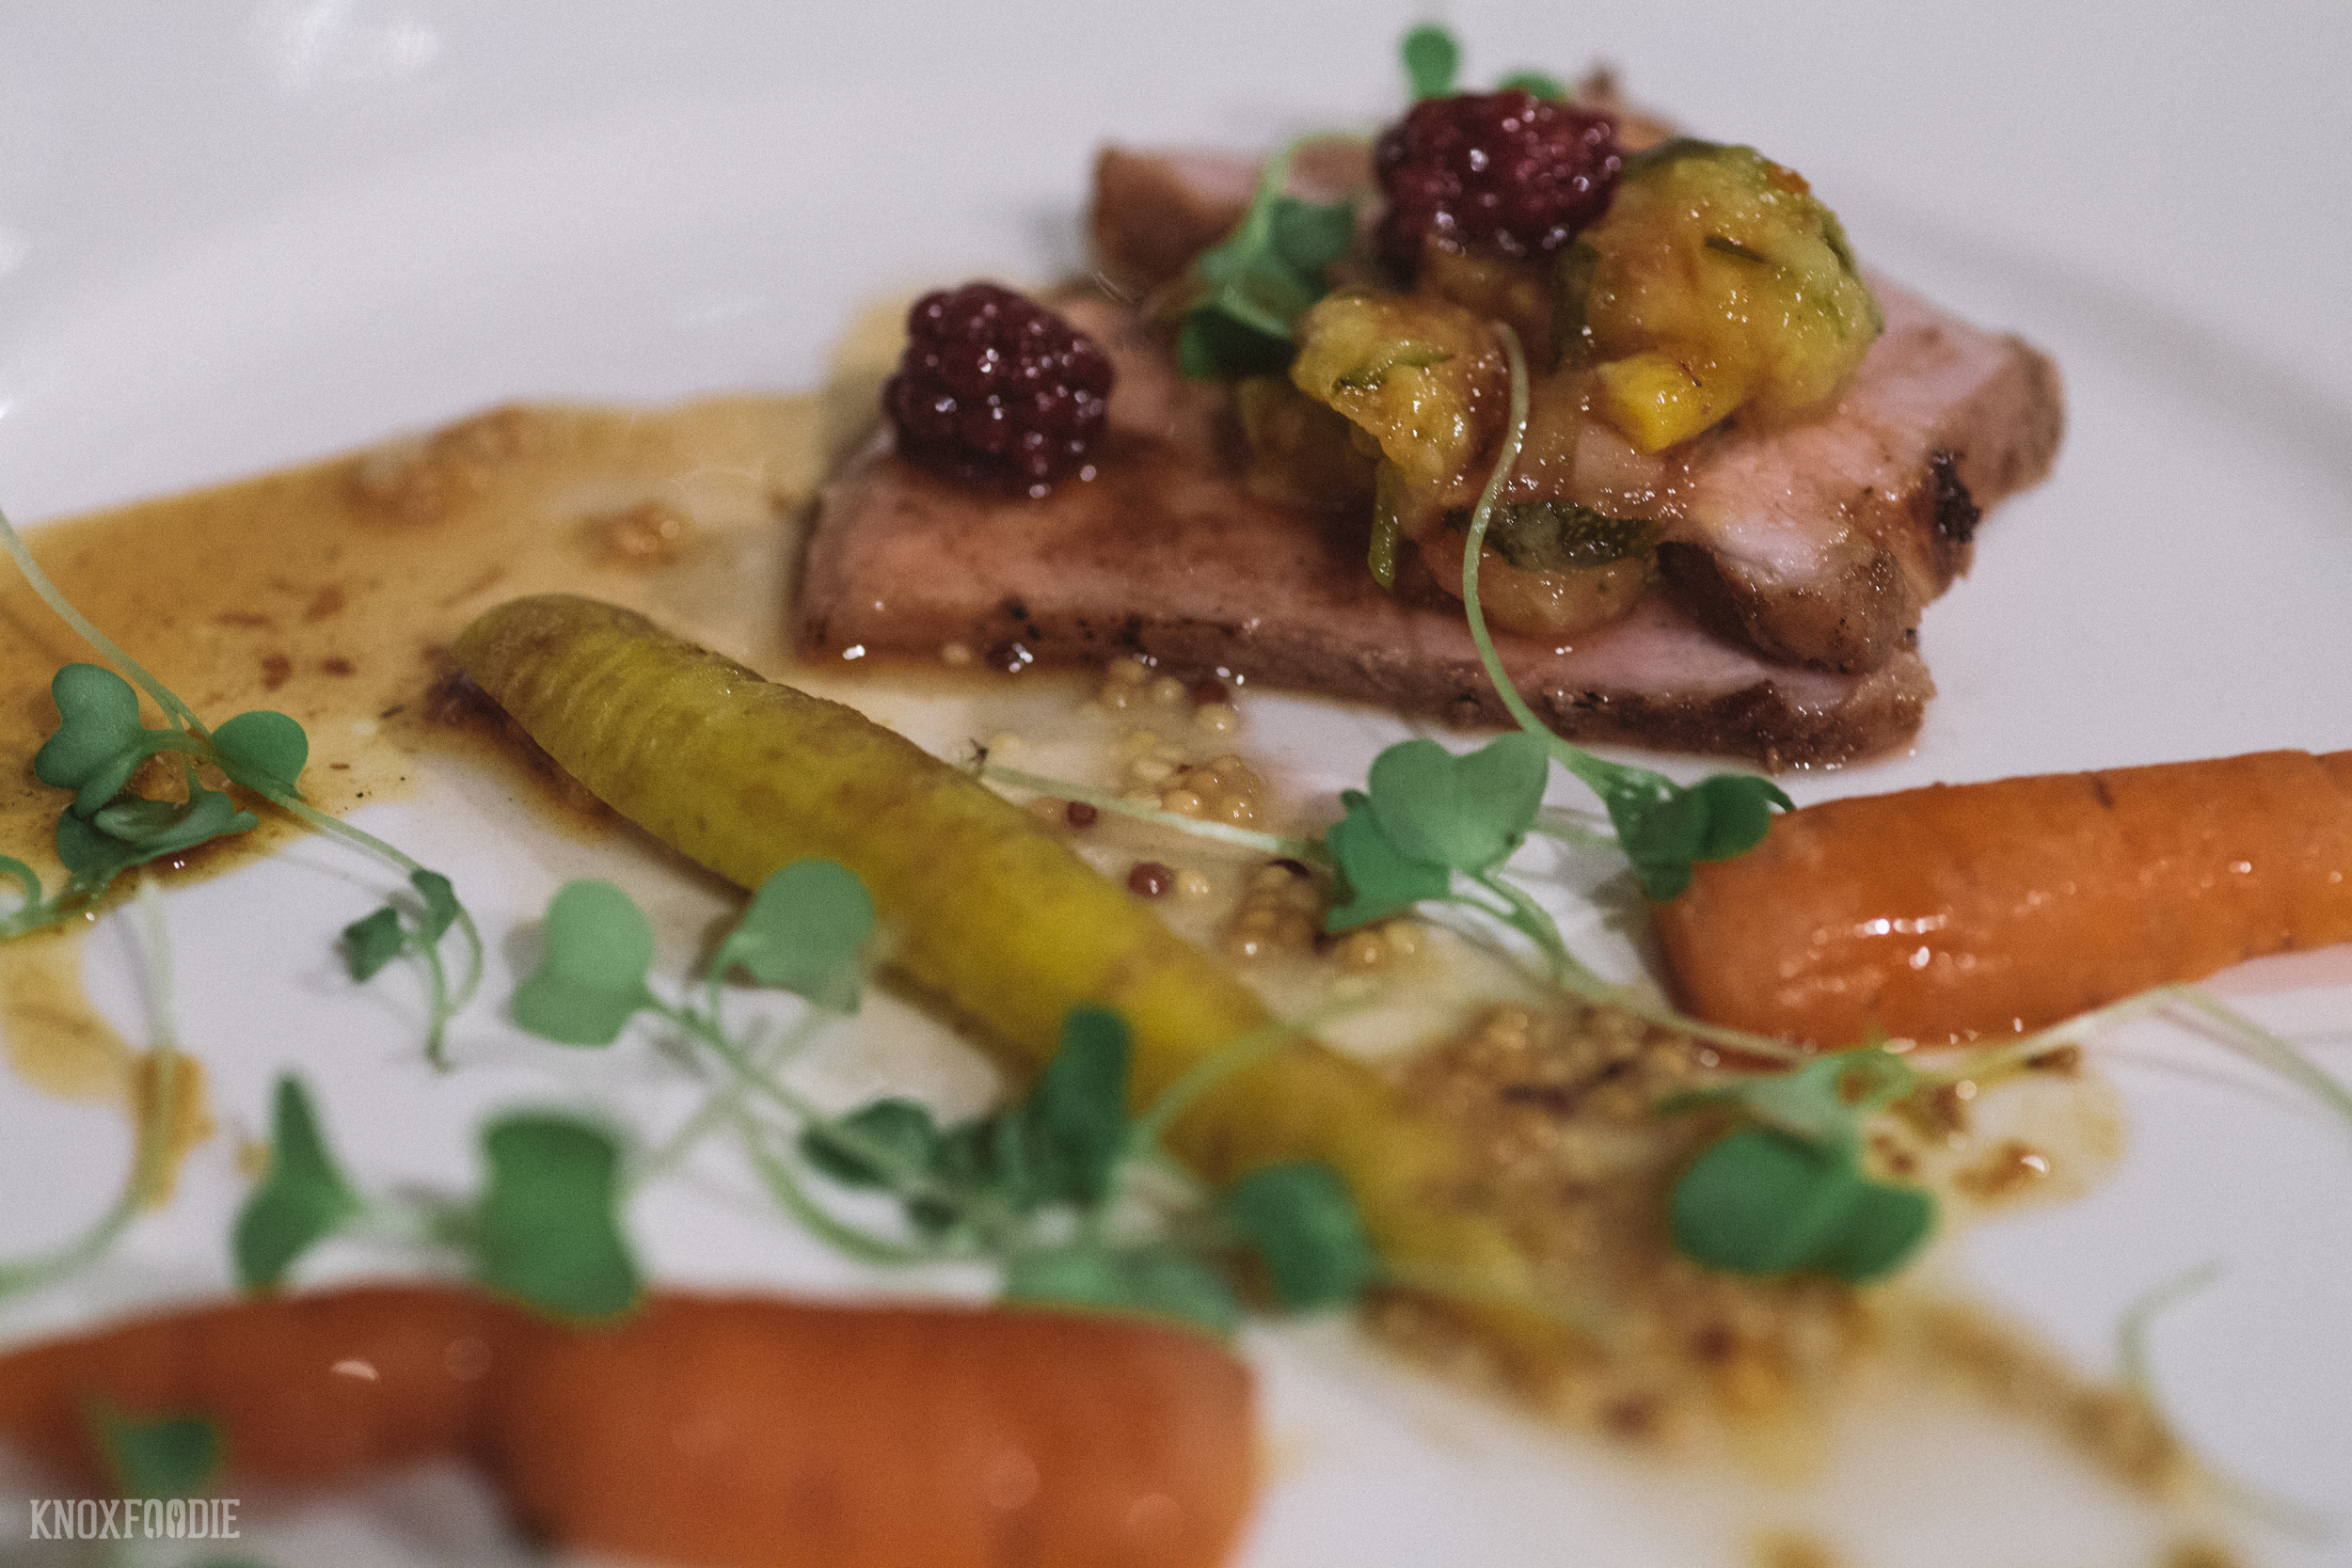 Charred pastured pork loin glazed with hickory bark sorghum syrup and WV salt, sassafras and wild ginger mustard, smoked carrot, poached blackberries, spicy pickled squash